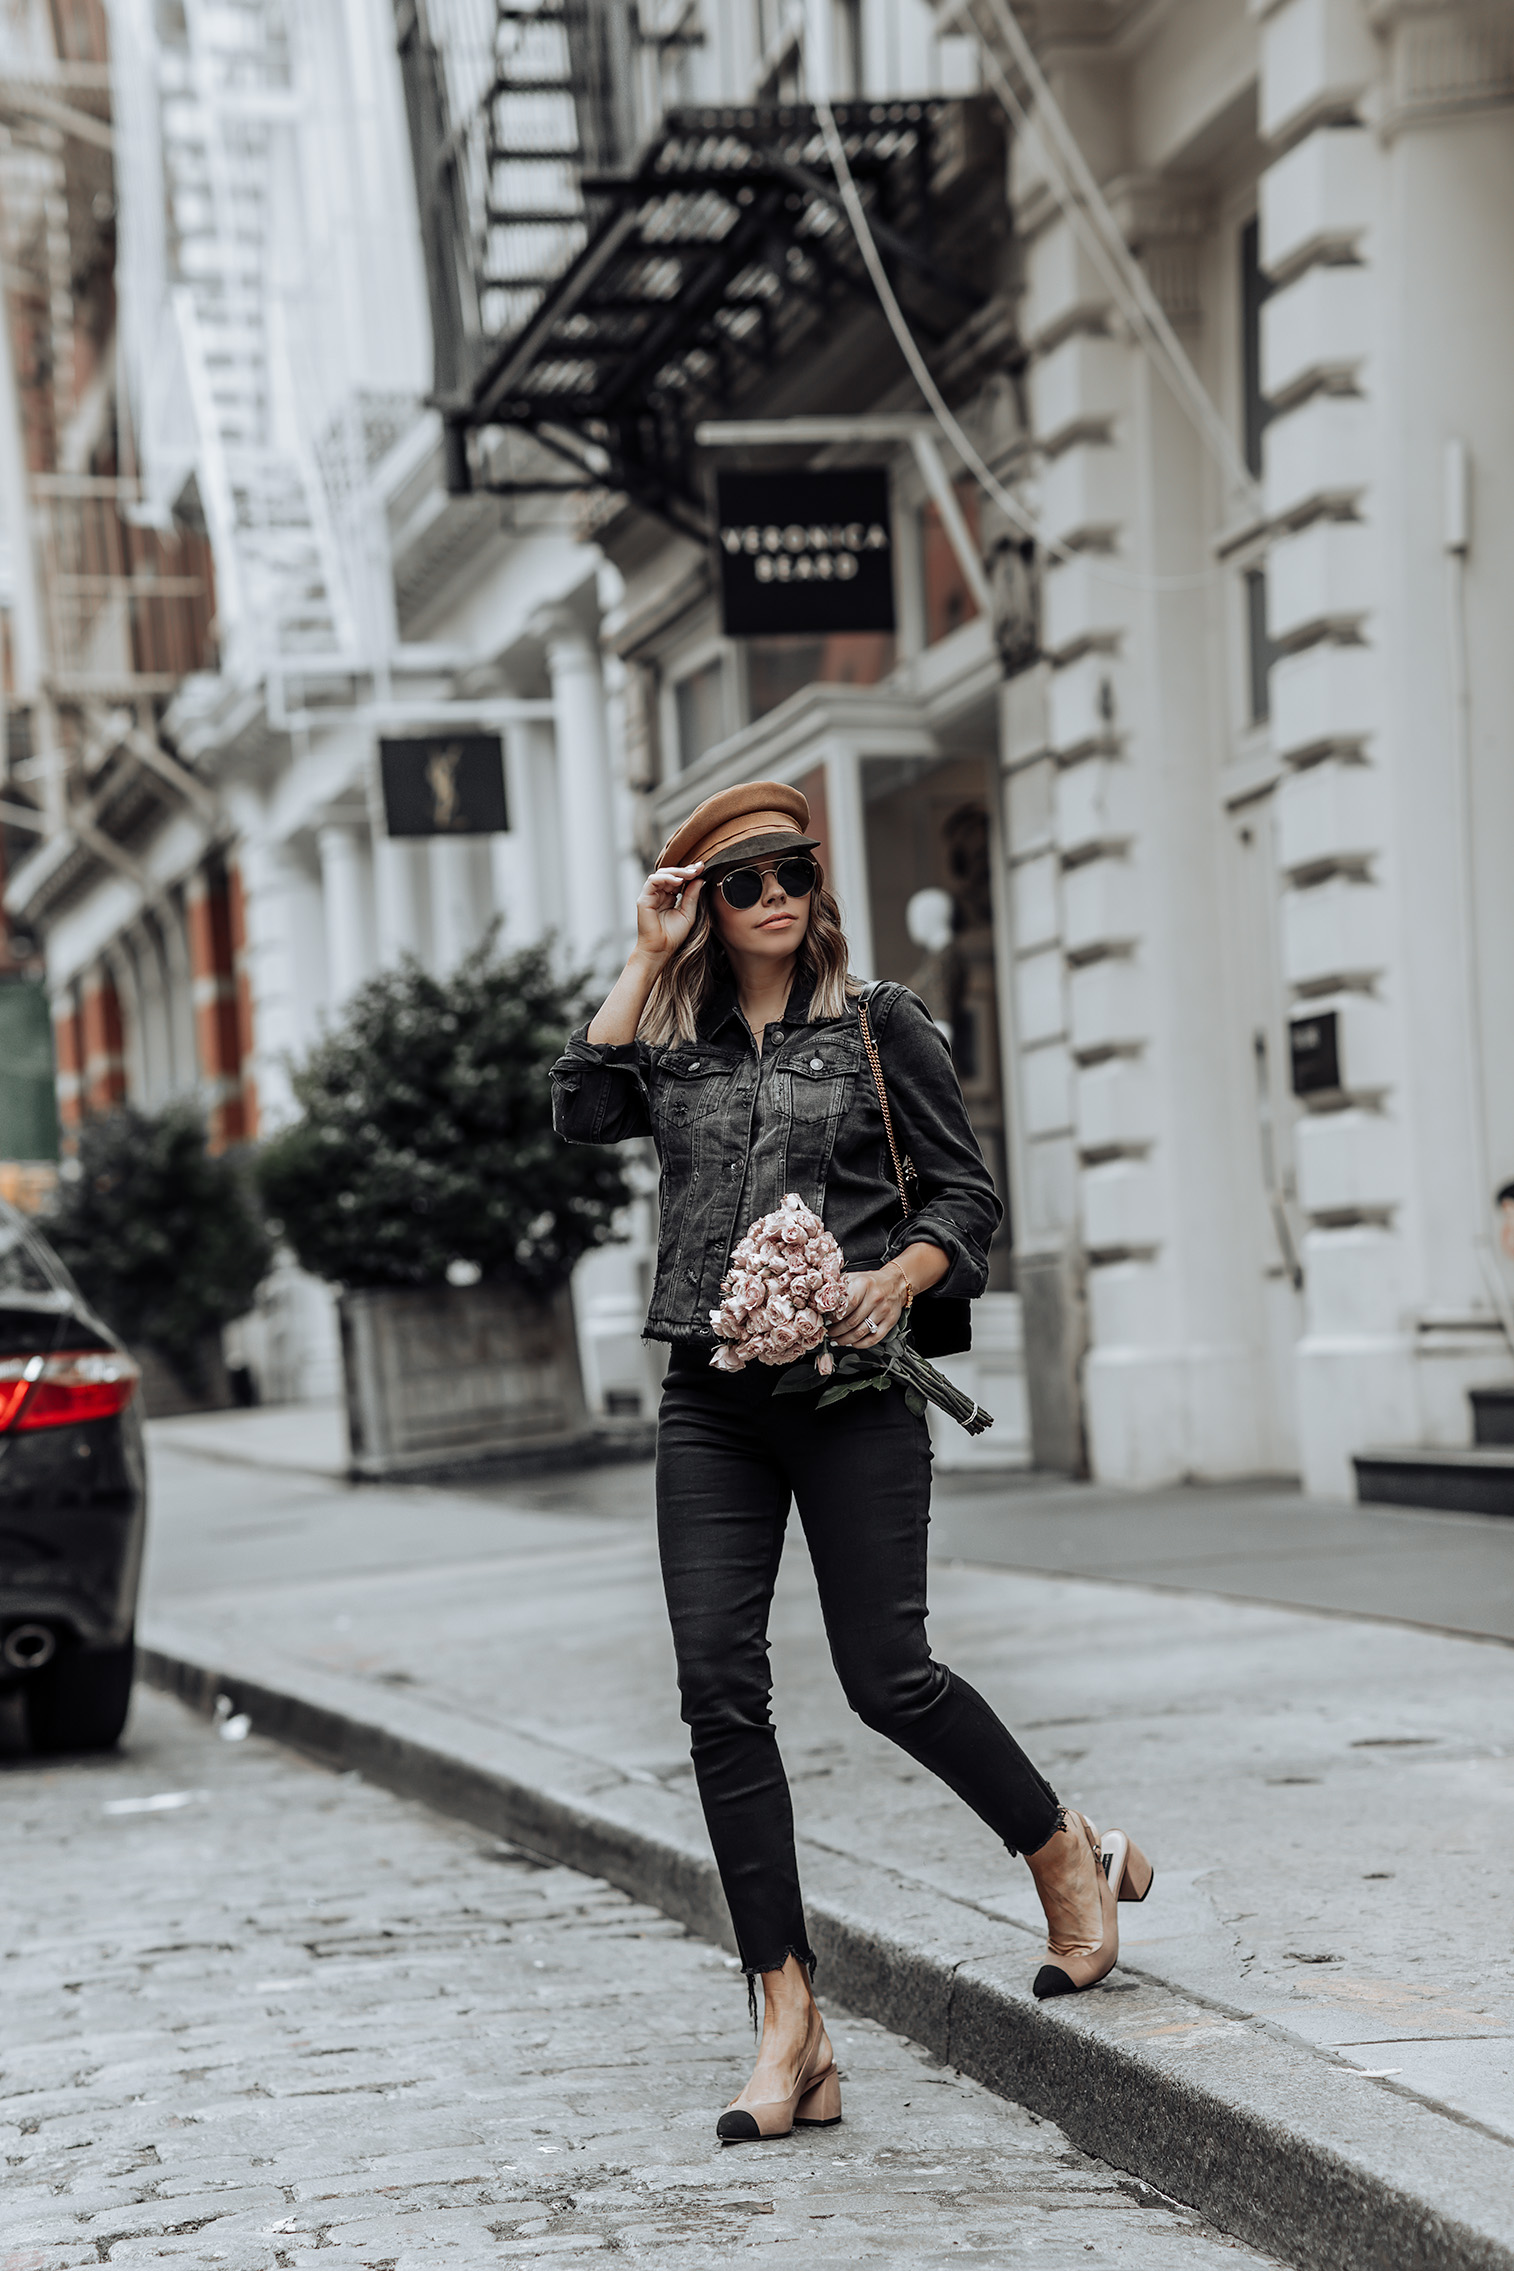 Denim on Denim   Click to shop the look:Abercrombie Denim Jacket   High Rise Ankle Jeans   NYC blog #nycblogger #ootd #liketkit